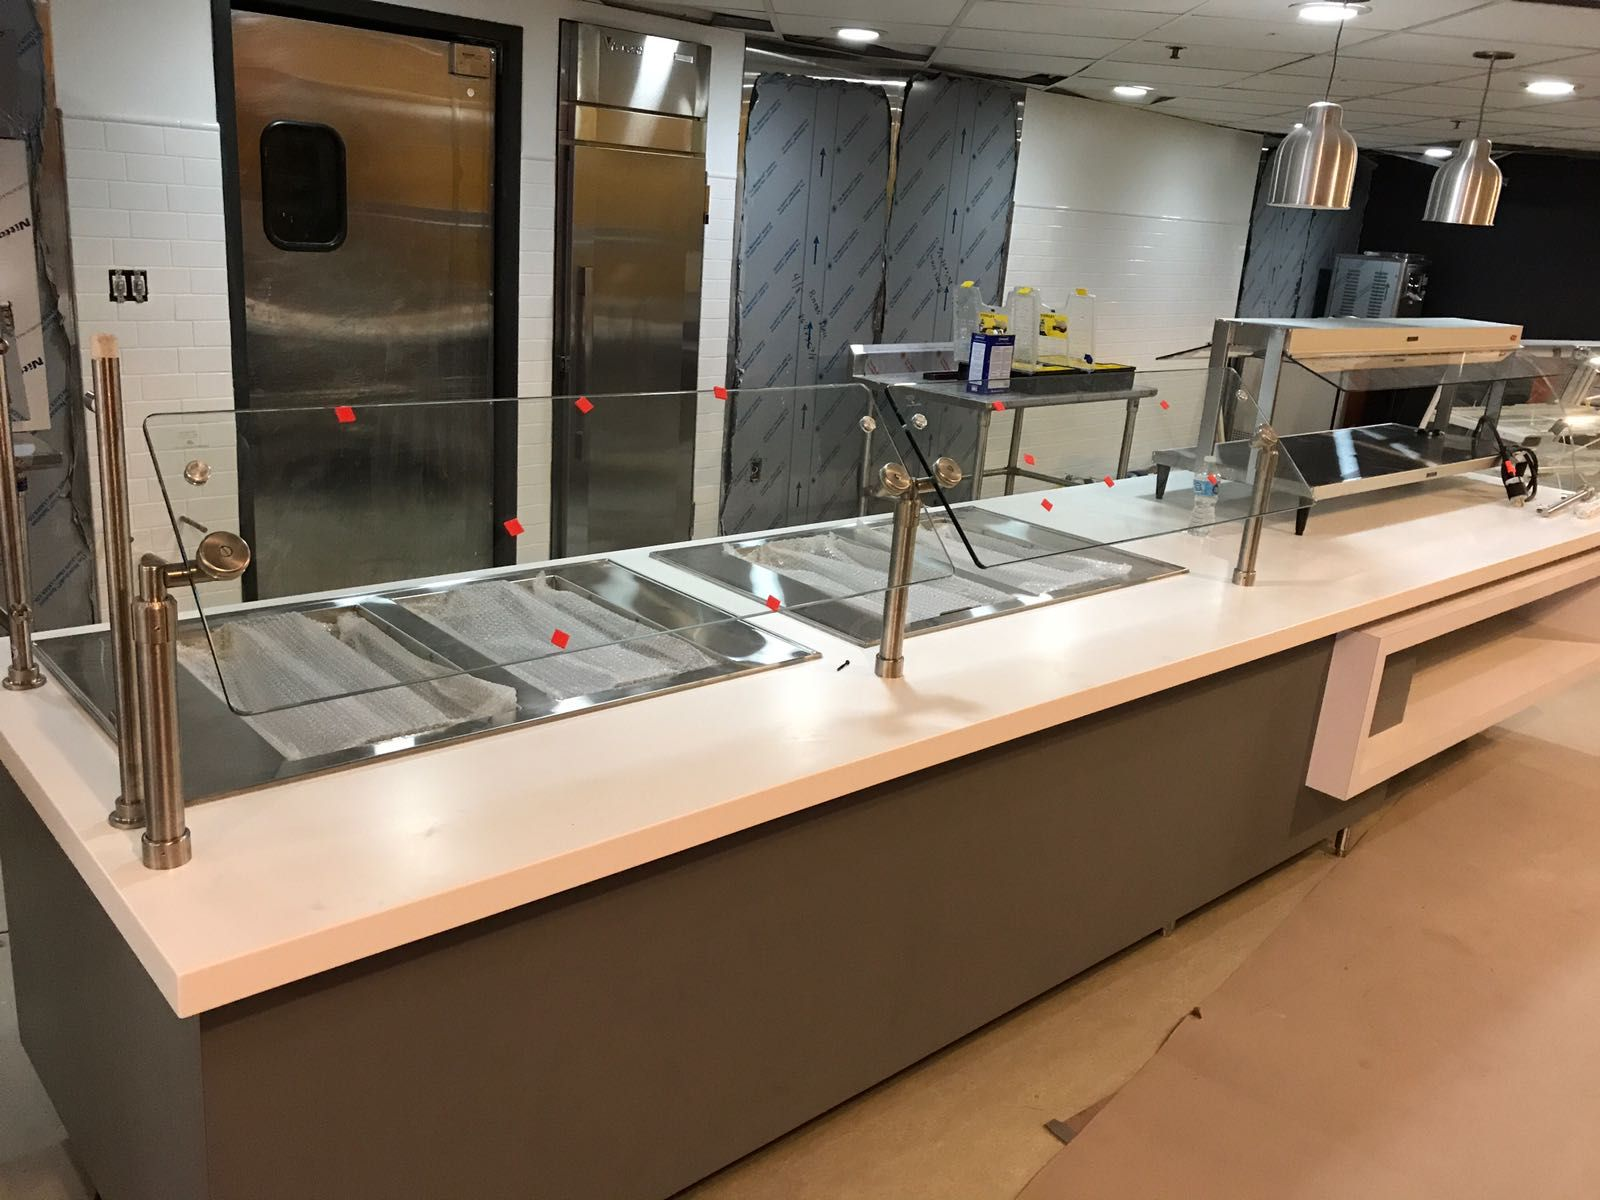 A New Cafeteria Line With Countertop Food Display Units And Hot